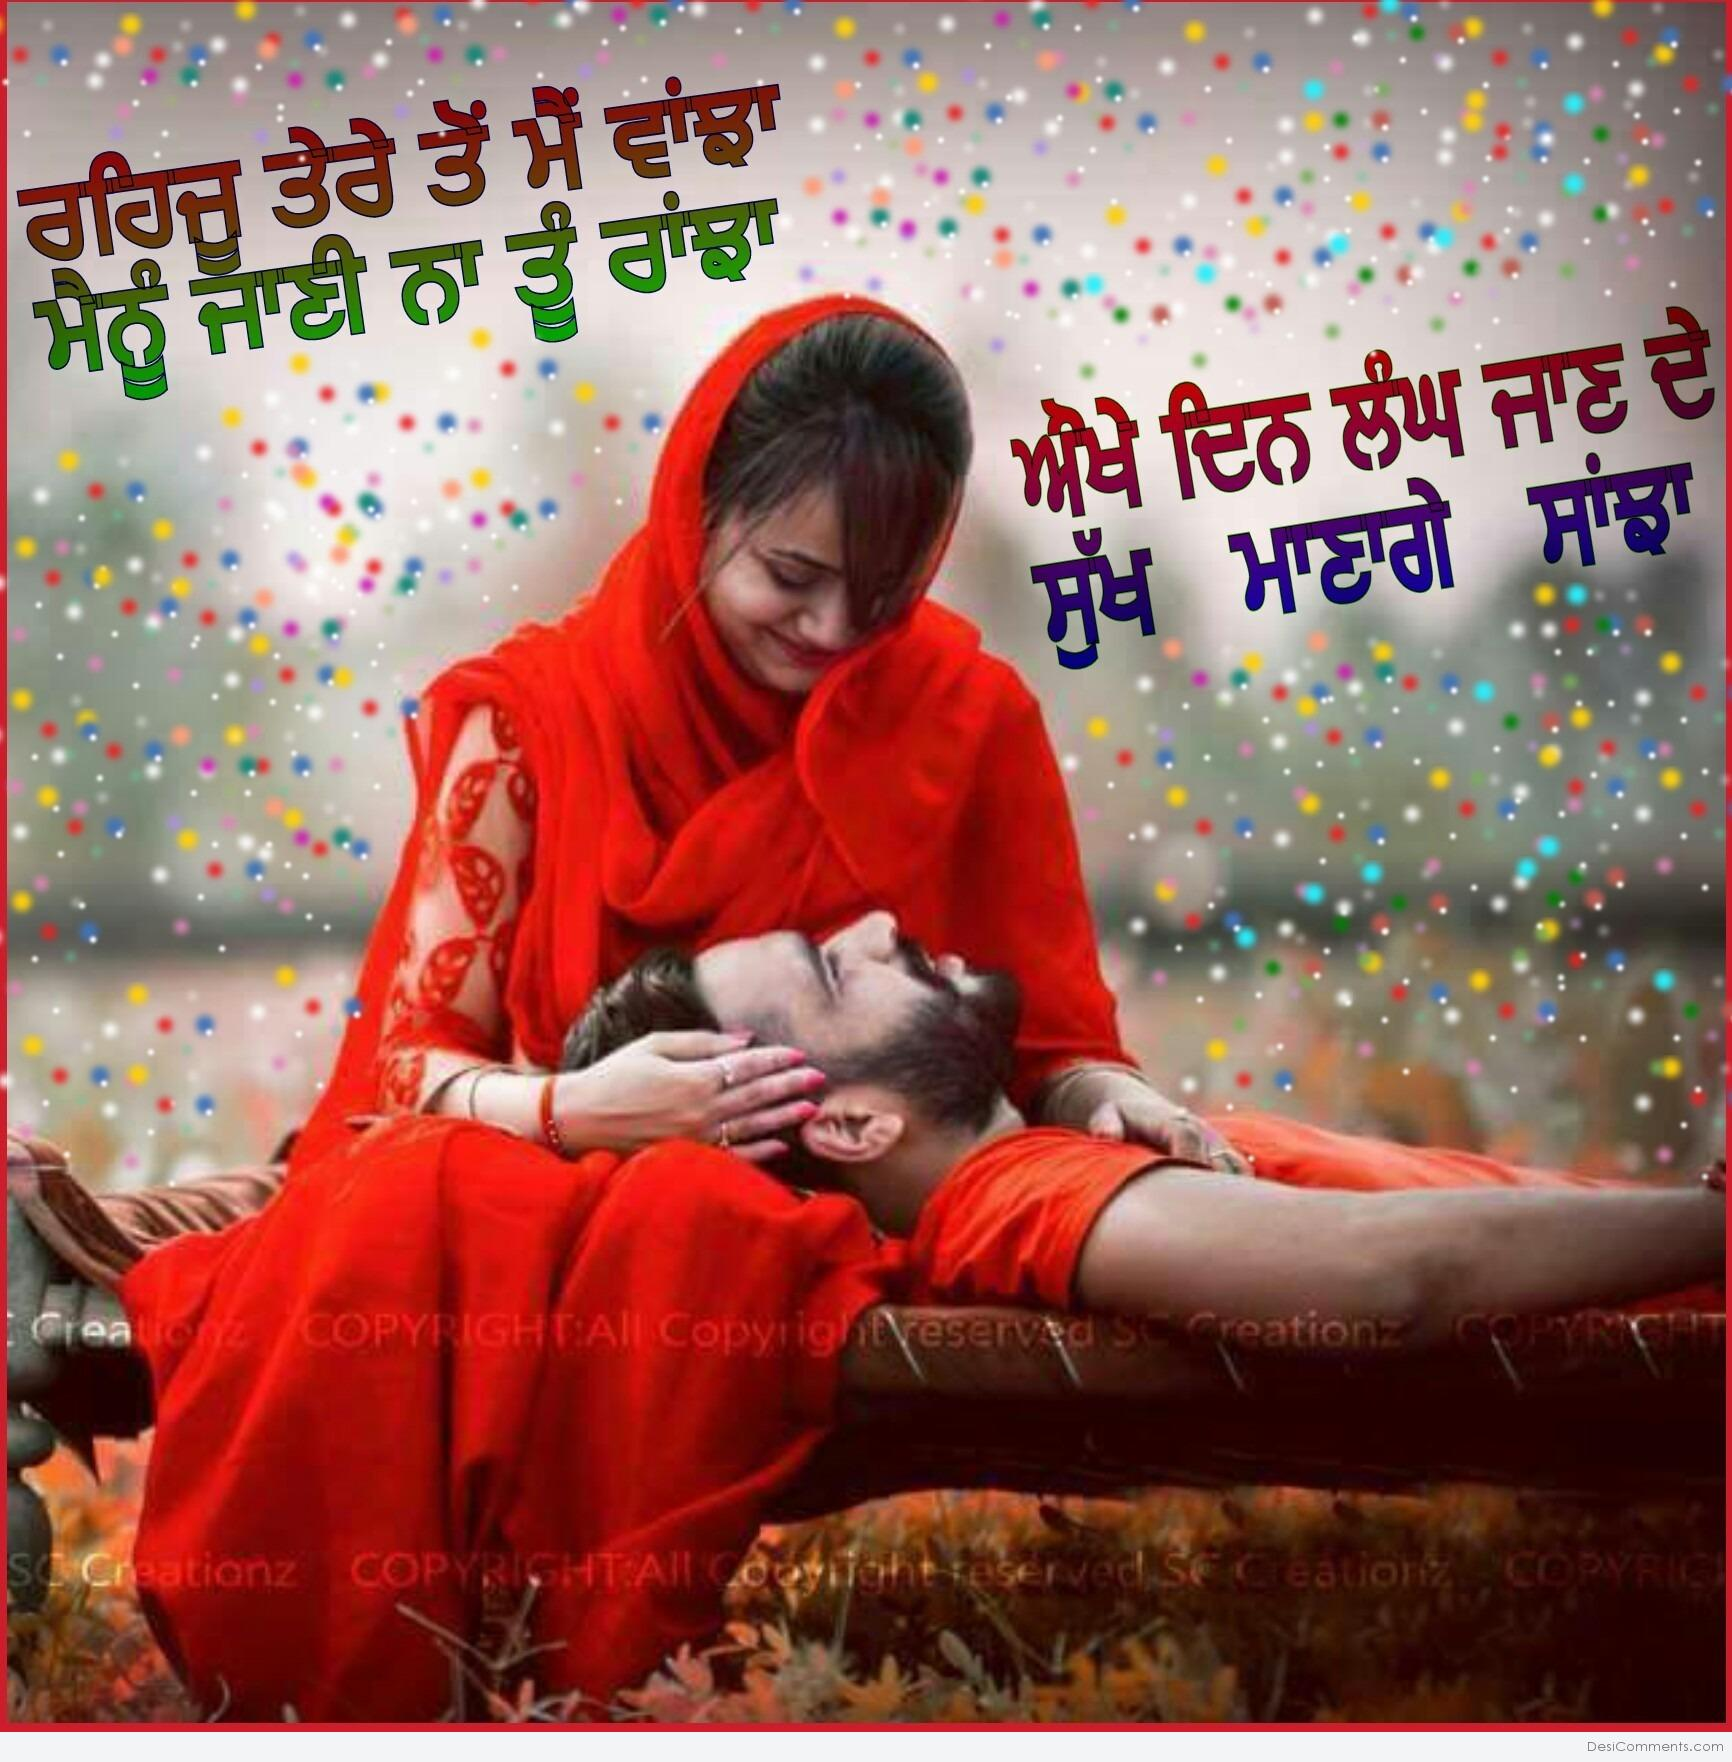 Punjabi love pictures images graphics for facebook - Punjabi desi pic ...